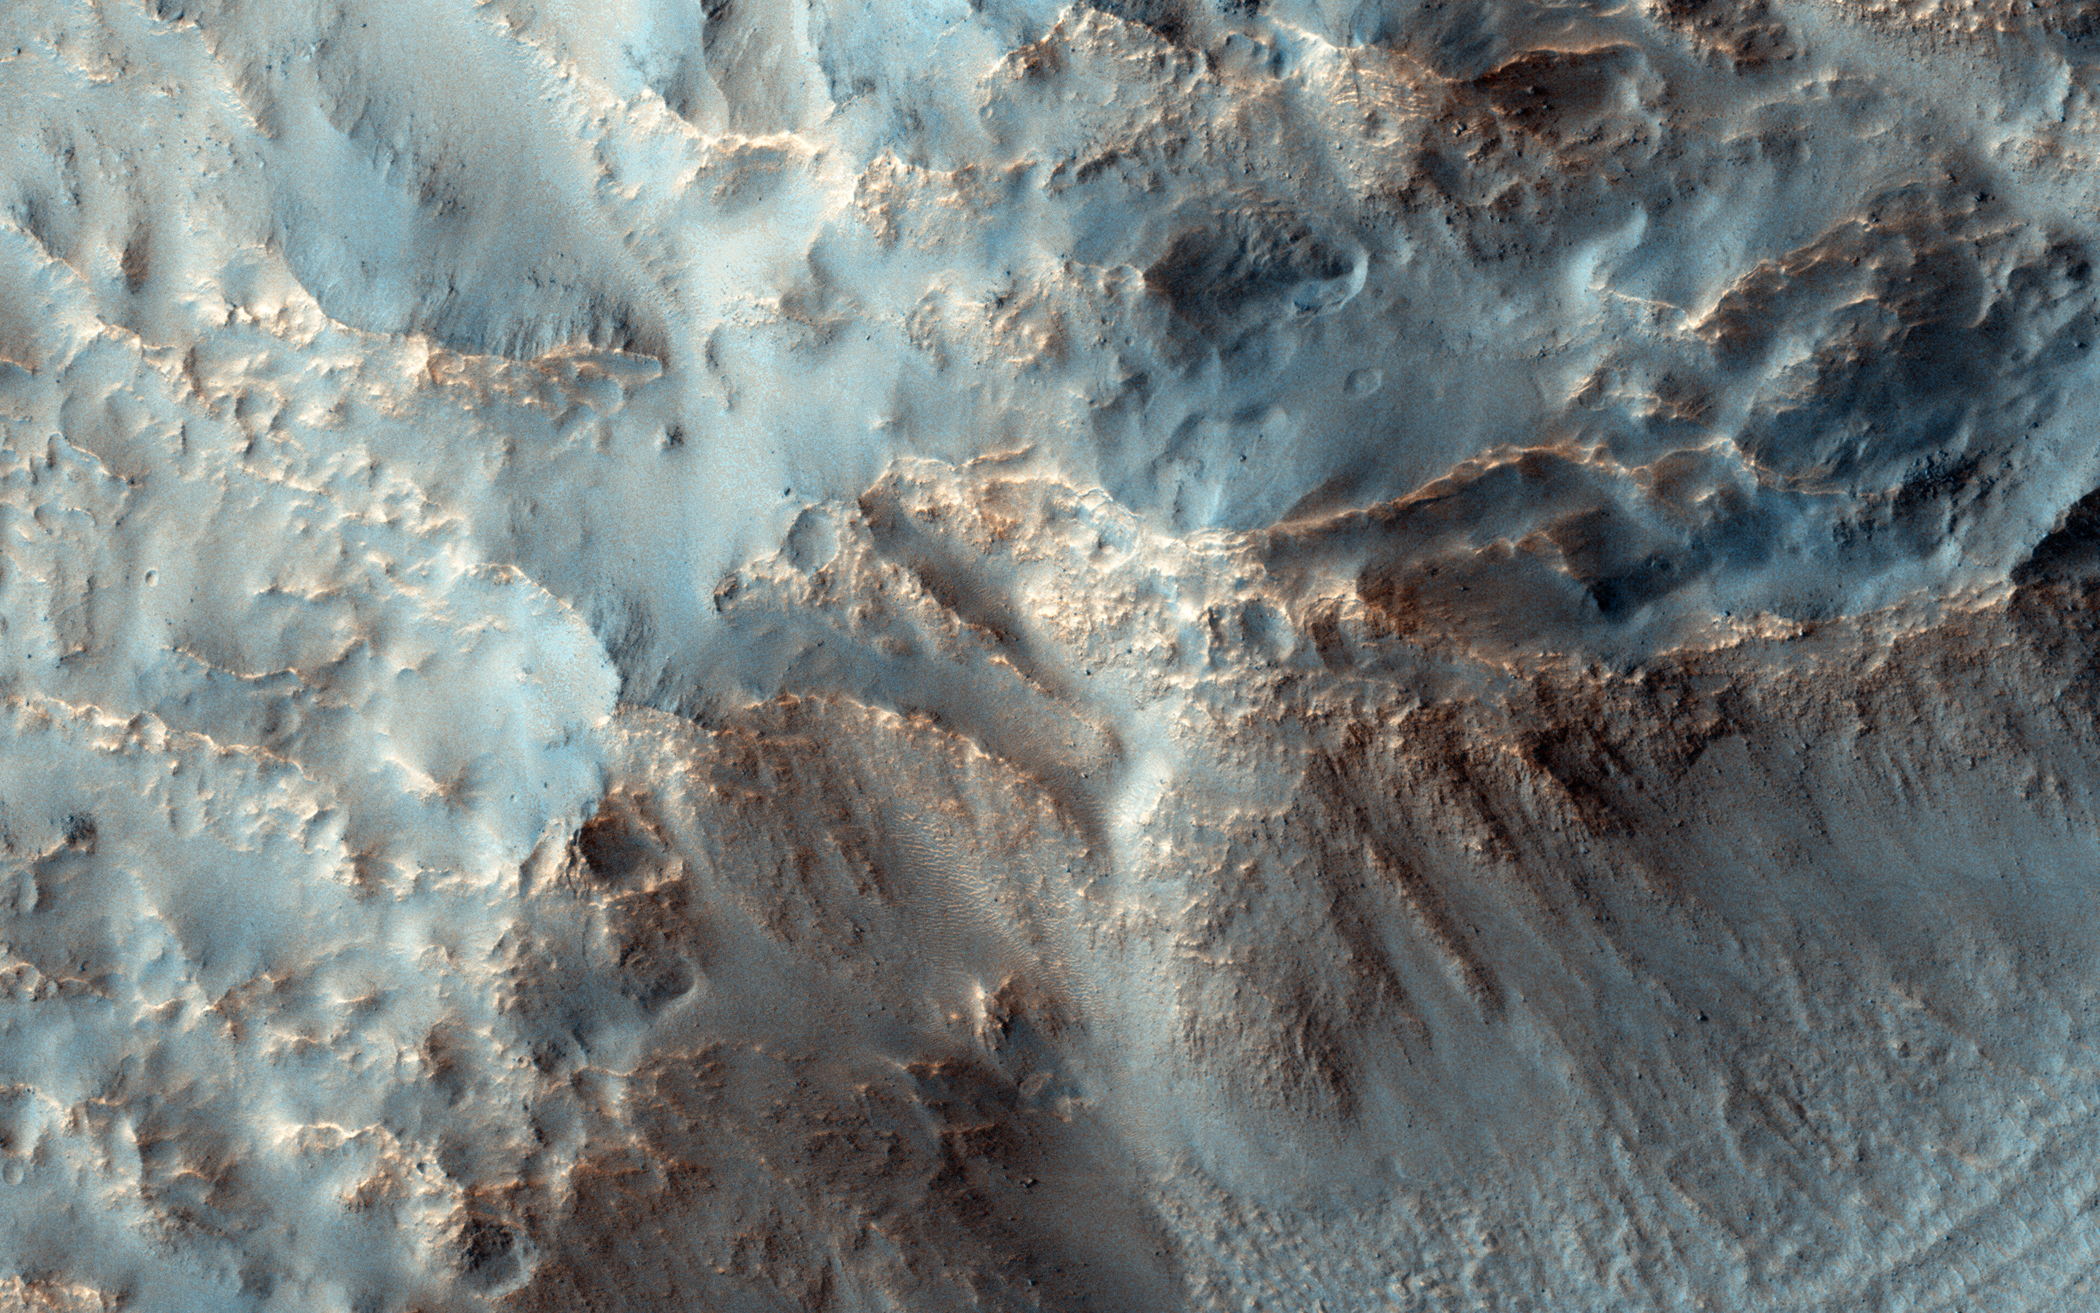 An image of the southeast rim of Hale crater, acquired on Nov. 13, 2014.